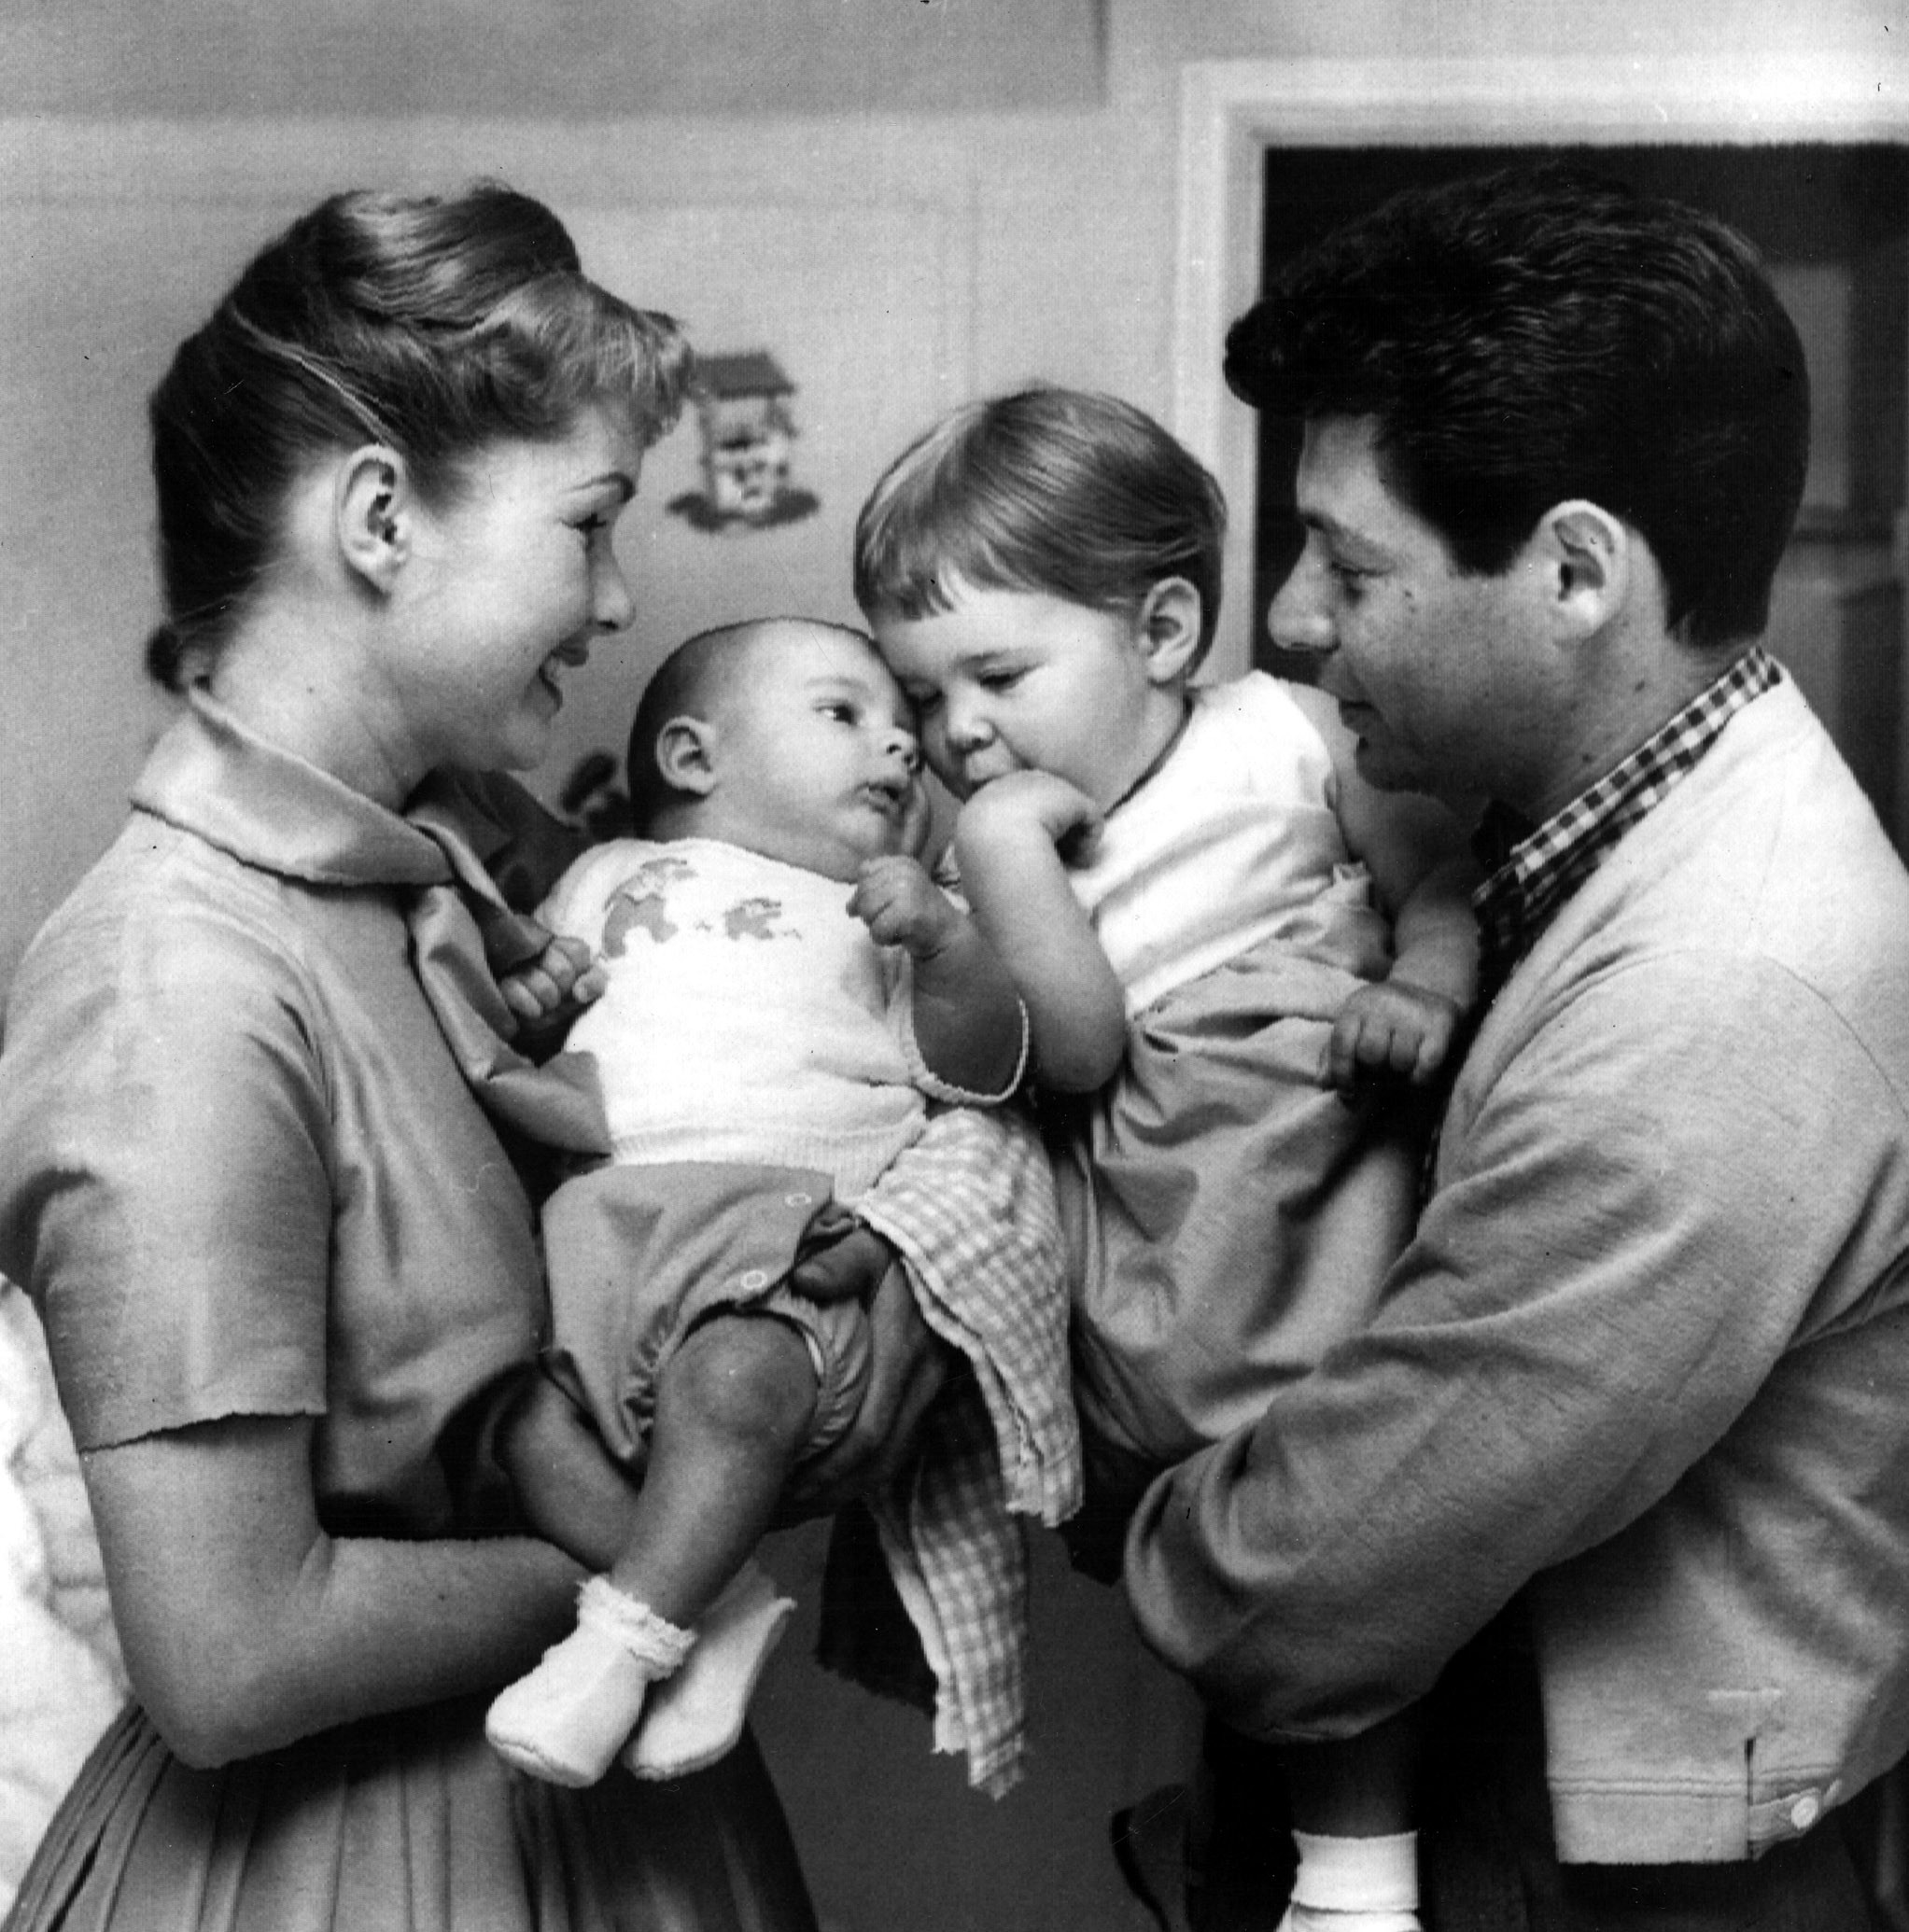 cam carrie fishers family - HD2045×2070